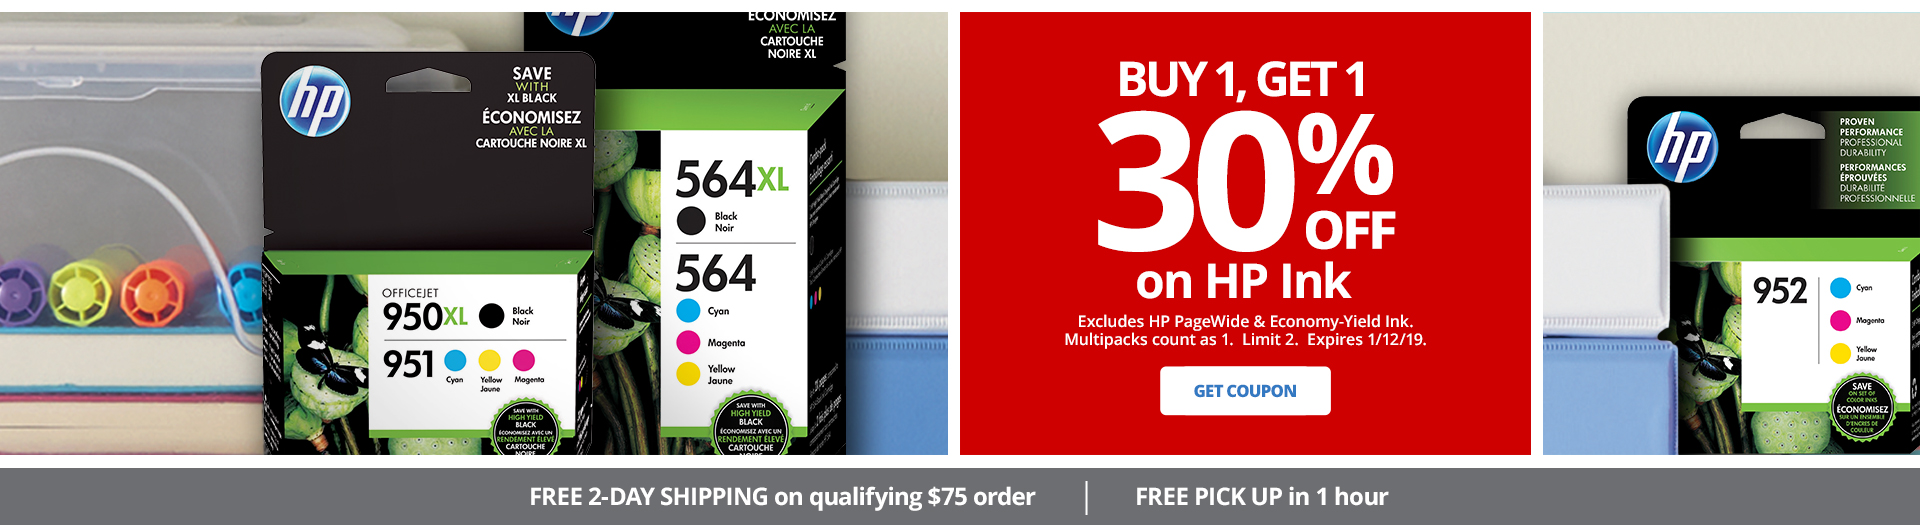 Buy 1 Get 1, 30% off HP Ink